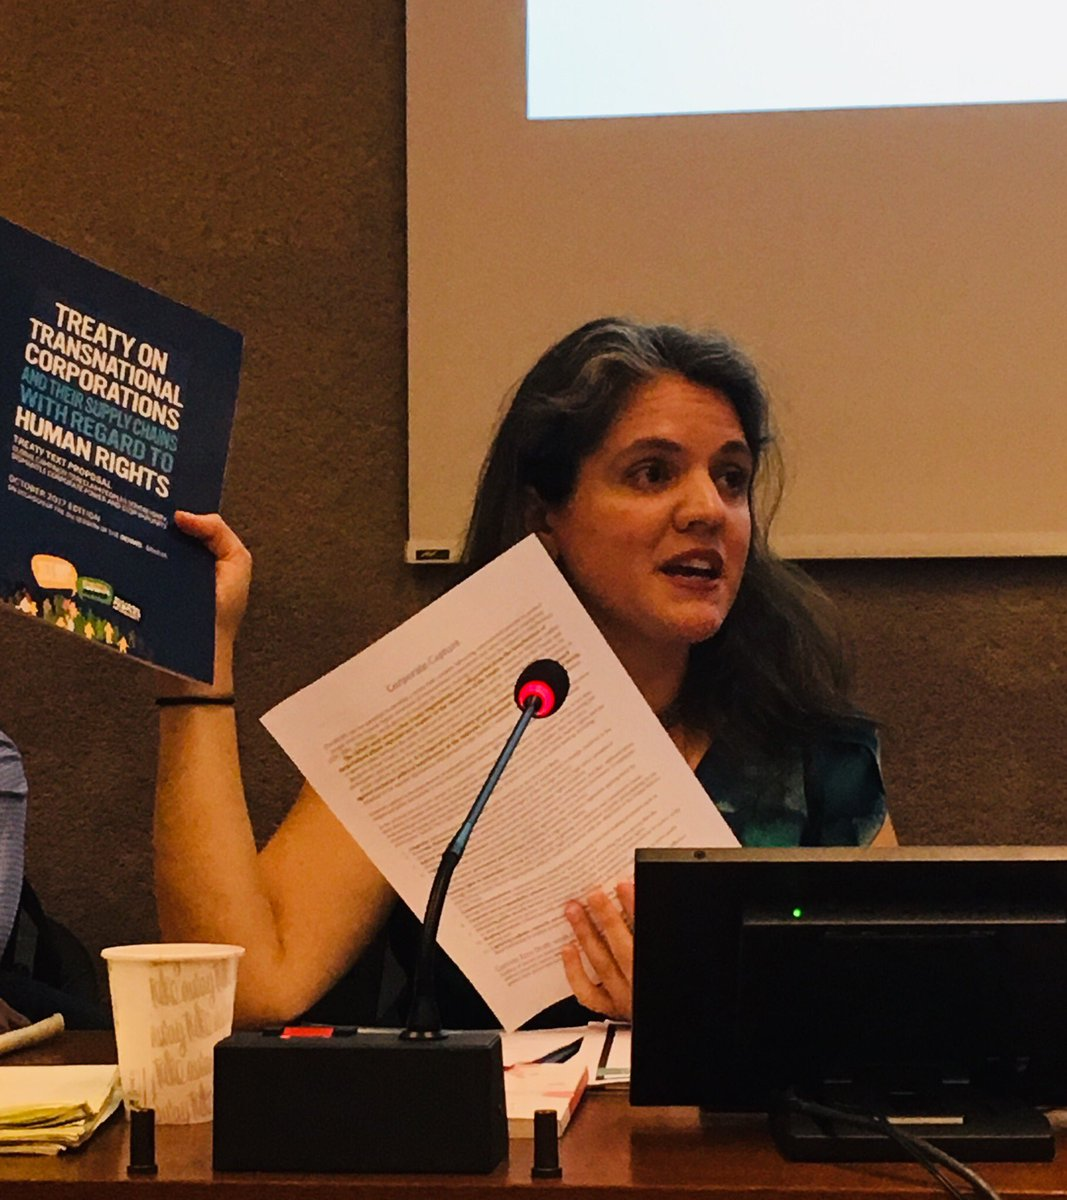 """""""We must act now! Civil society is ready and prepared to stop corporate capture in the #bindingtreaty """" """"let's build from the @FCTCofficial example"""" @StopTNCimpunity @StopCorpAbuse @ESCRNet @TreatyAlliance"""